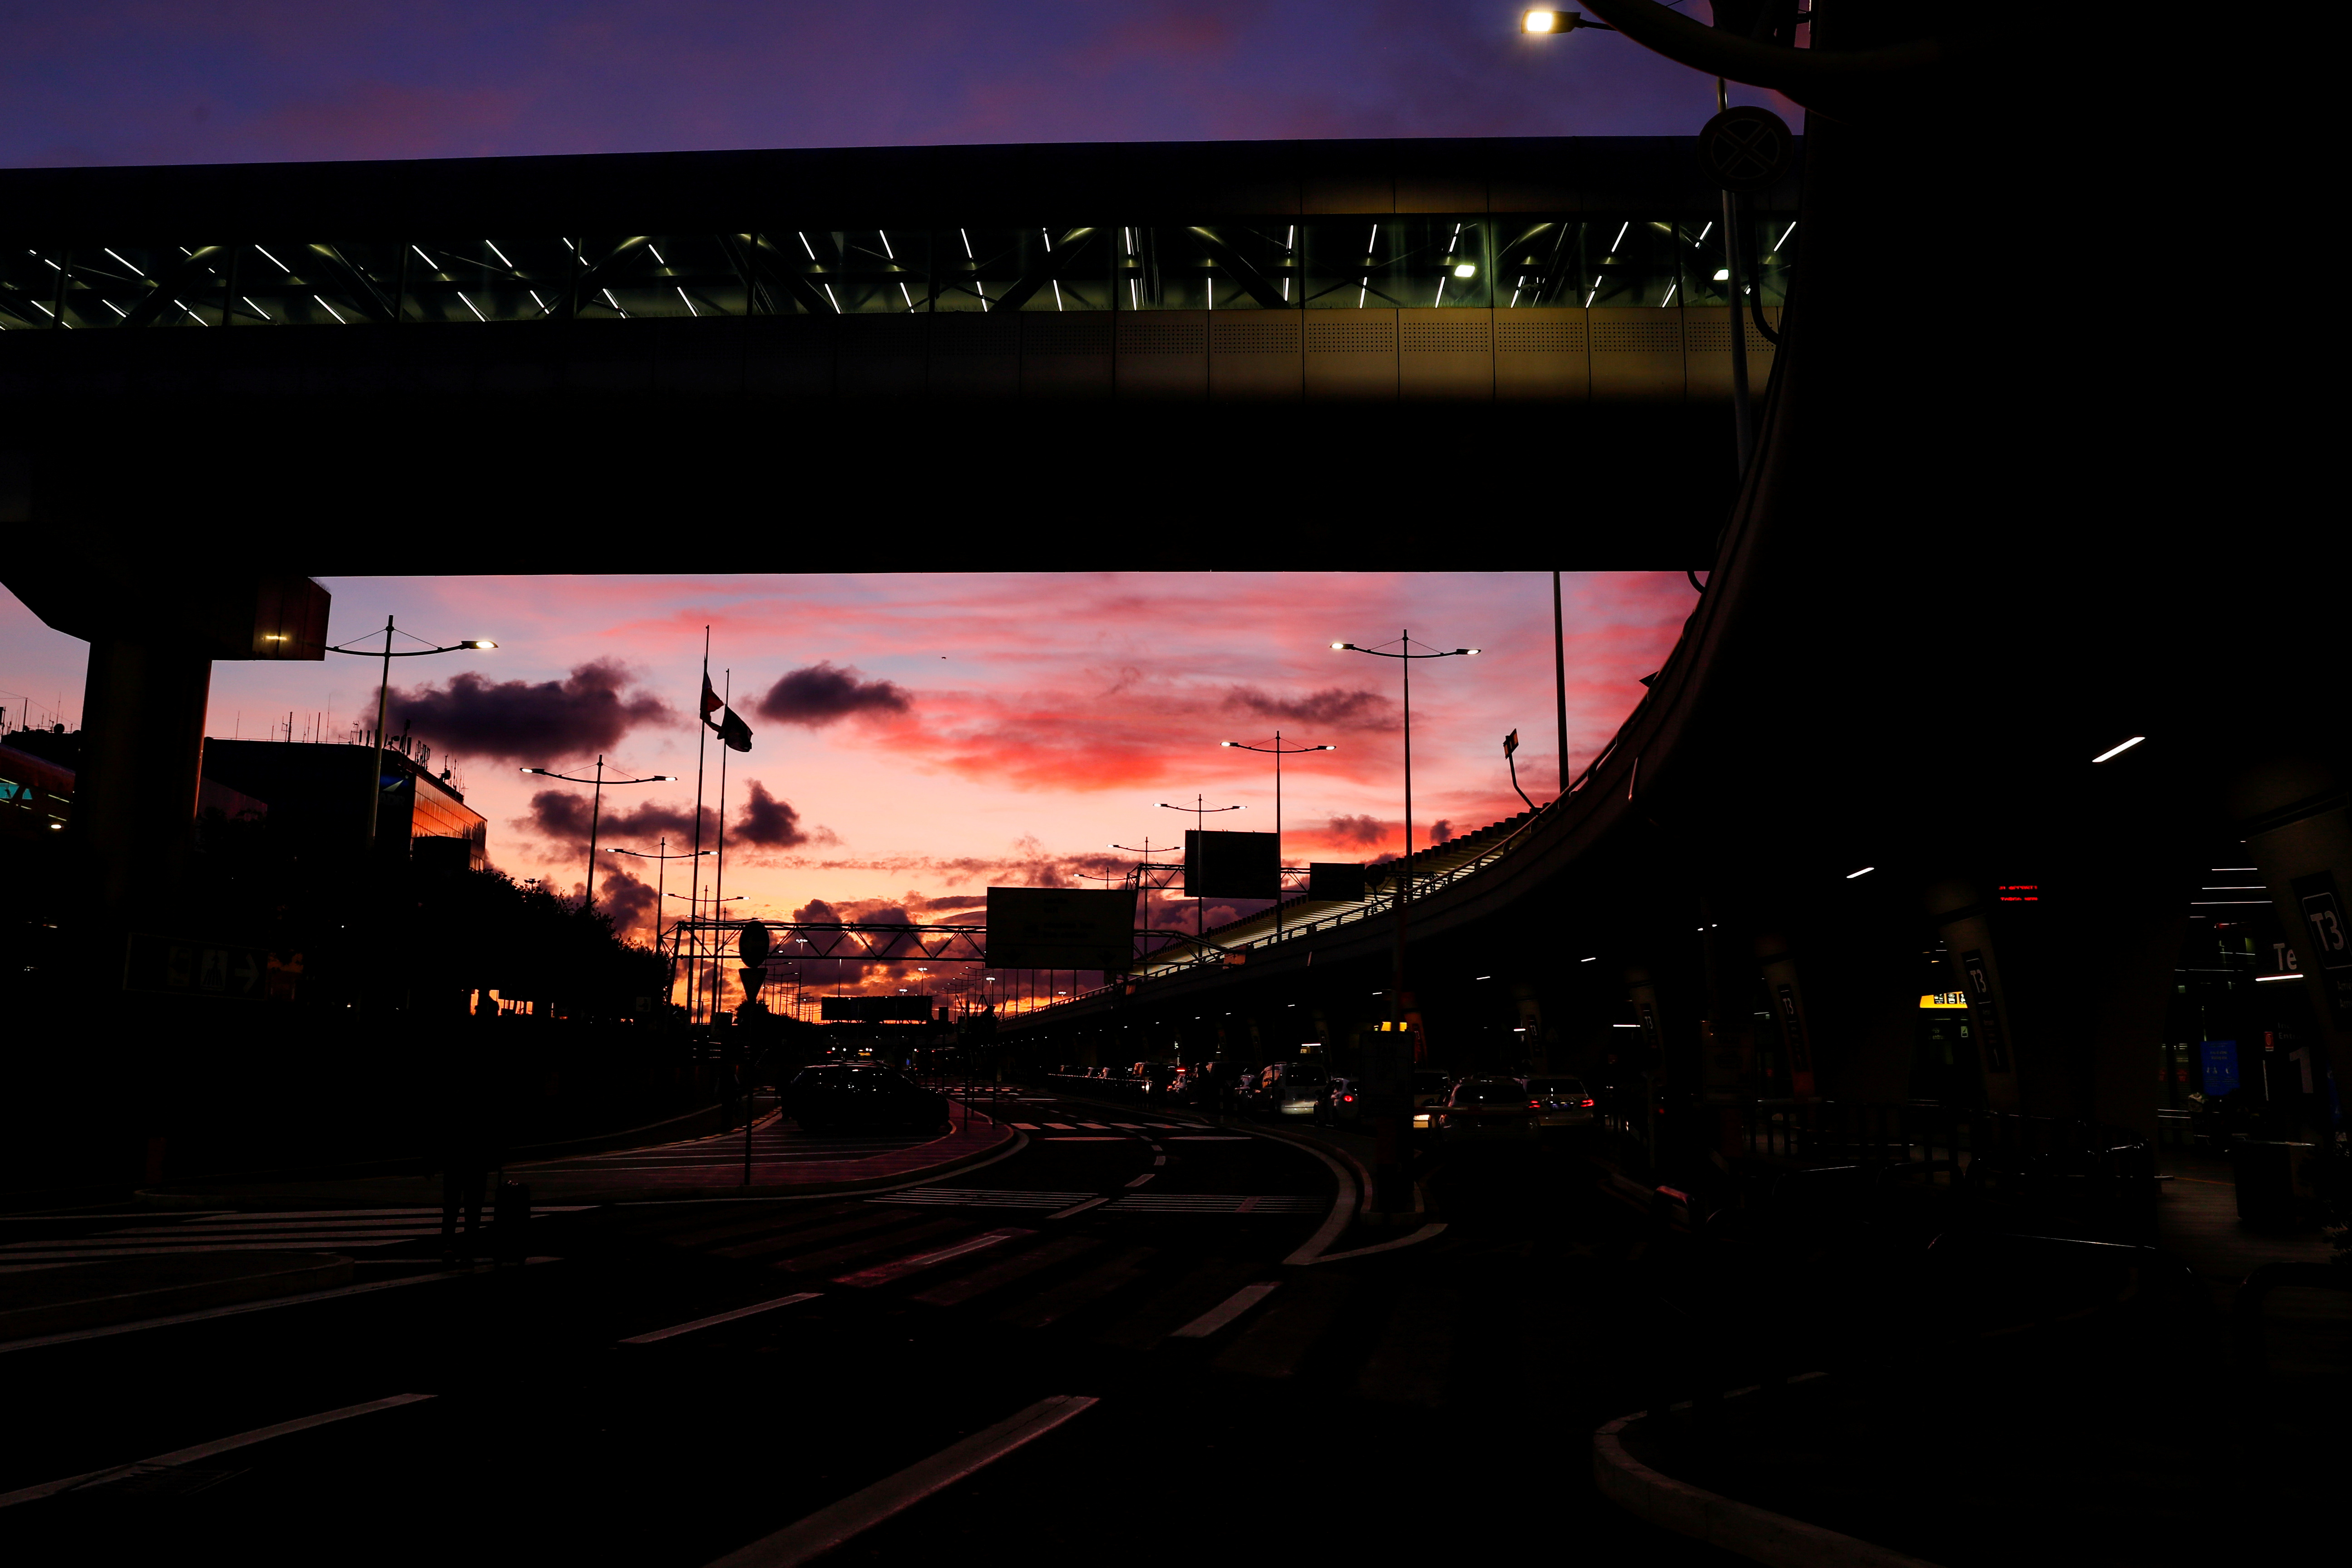 Fiumicino airport is seen at sunset in Rome, Italy, December 24, 2020. REUTERS/Remo Casilli/File Photo